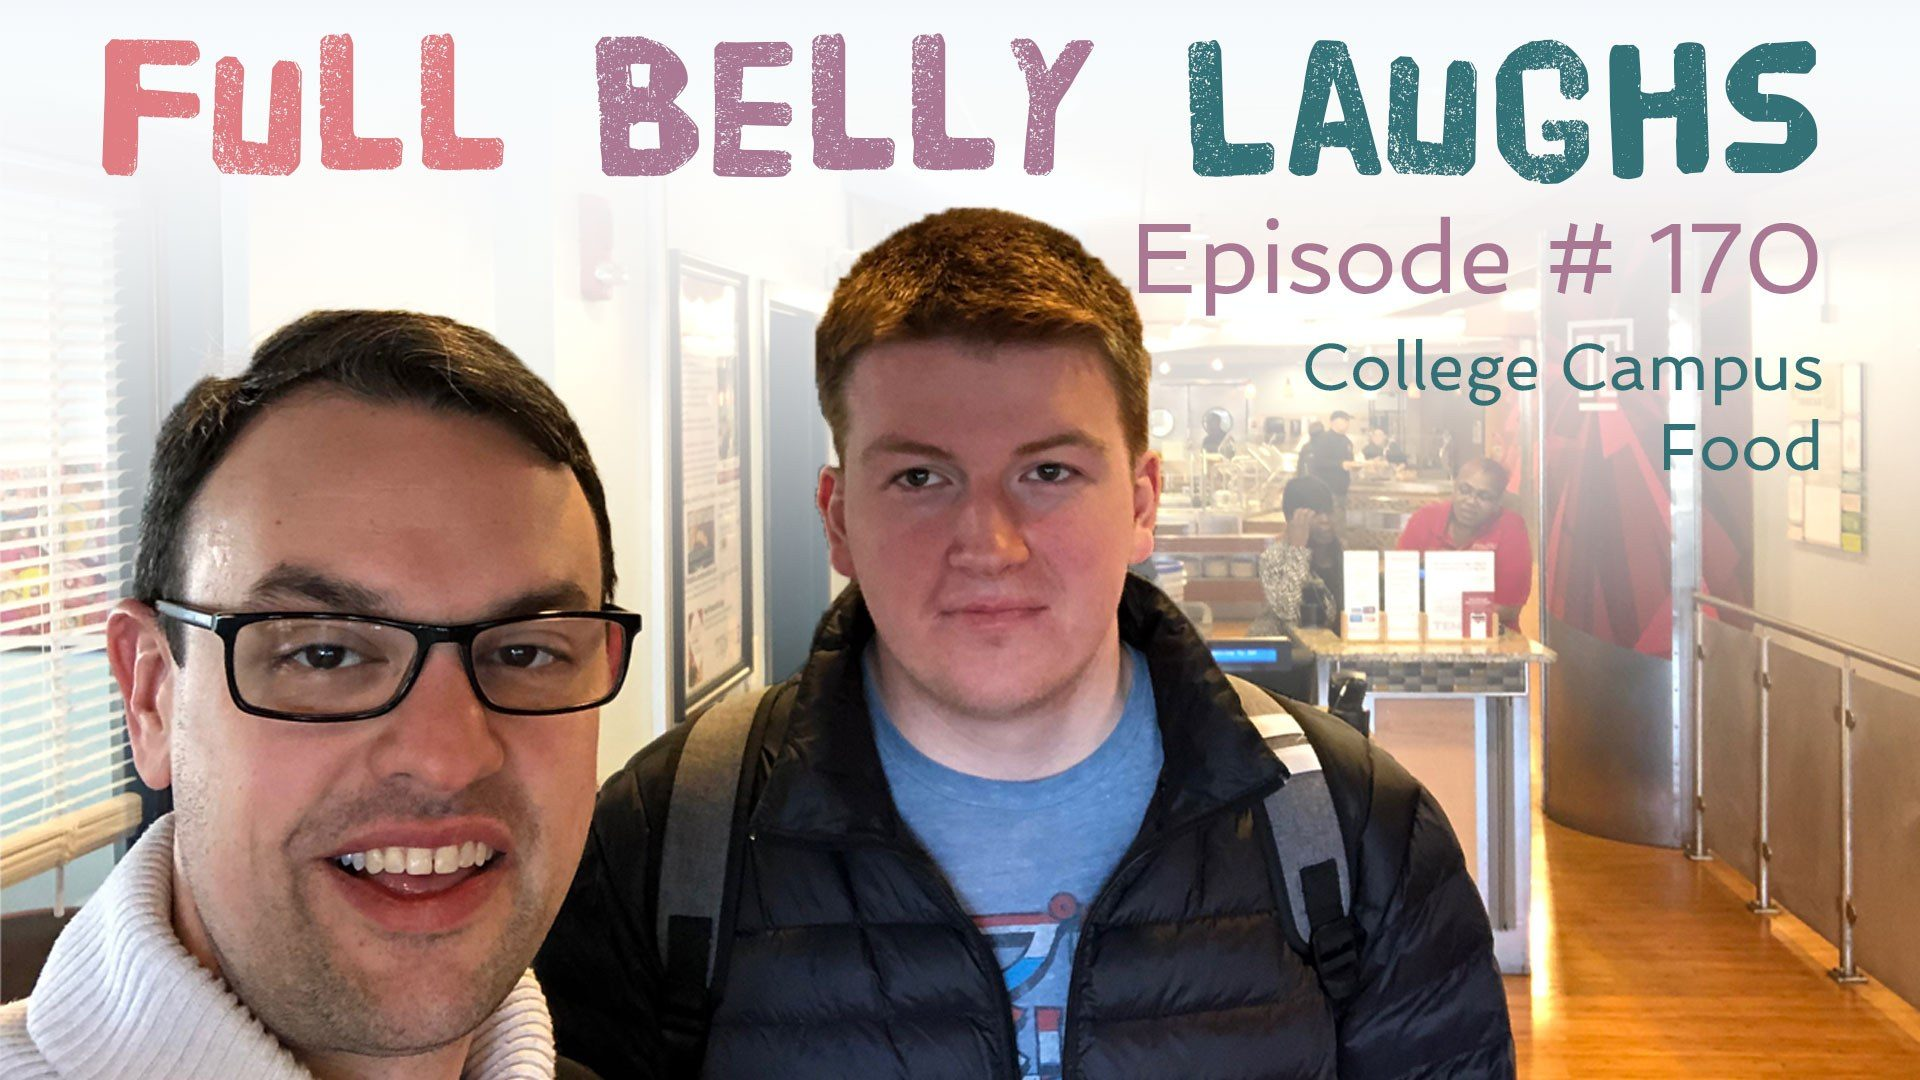 full belly laughs podcast episode 170 college campus food audio artwork